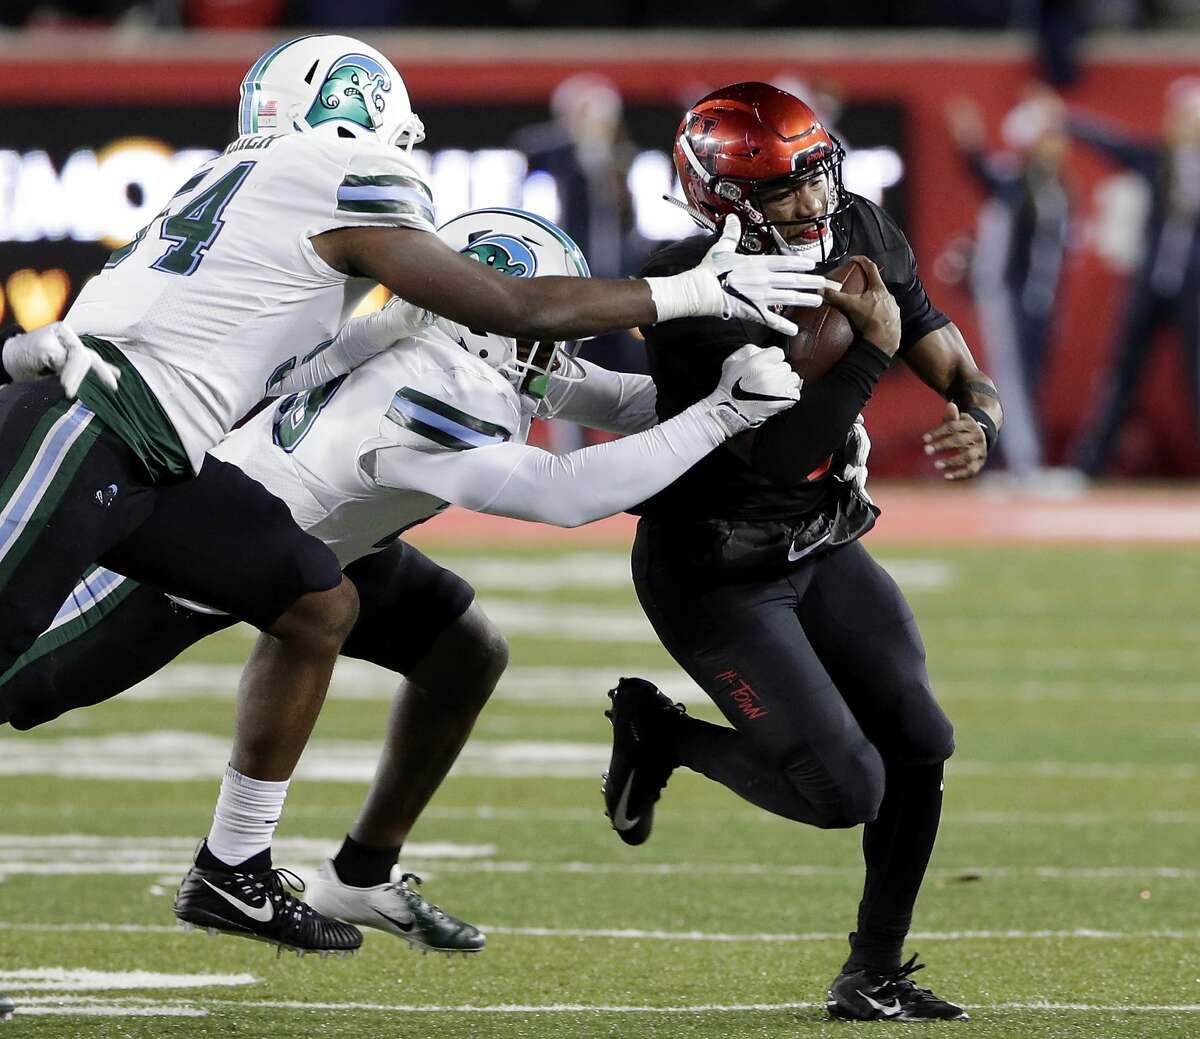 Tulane defensive end Carlos Hatcher, left, and linebacker Marvin Moody, middle, catch Houston quarterback D'Eriq King, right, on a keeper play during the first half of their football game Thursday, Nov. 15, 2018 in Houston, TX.